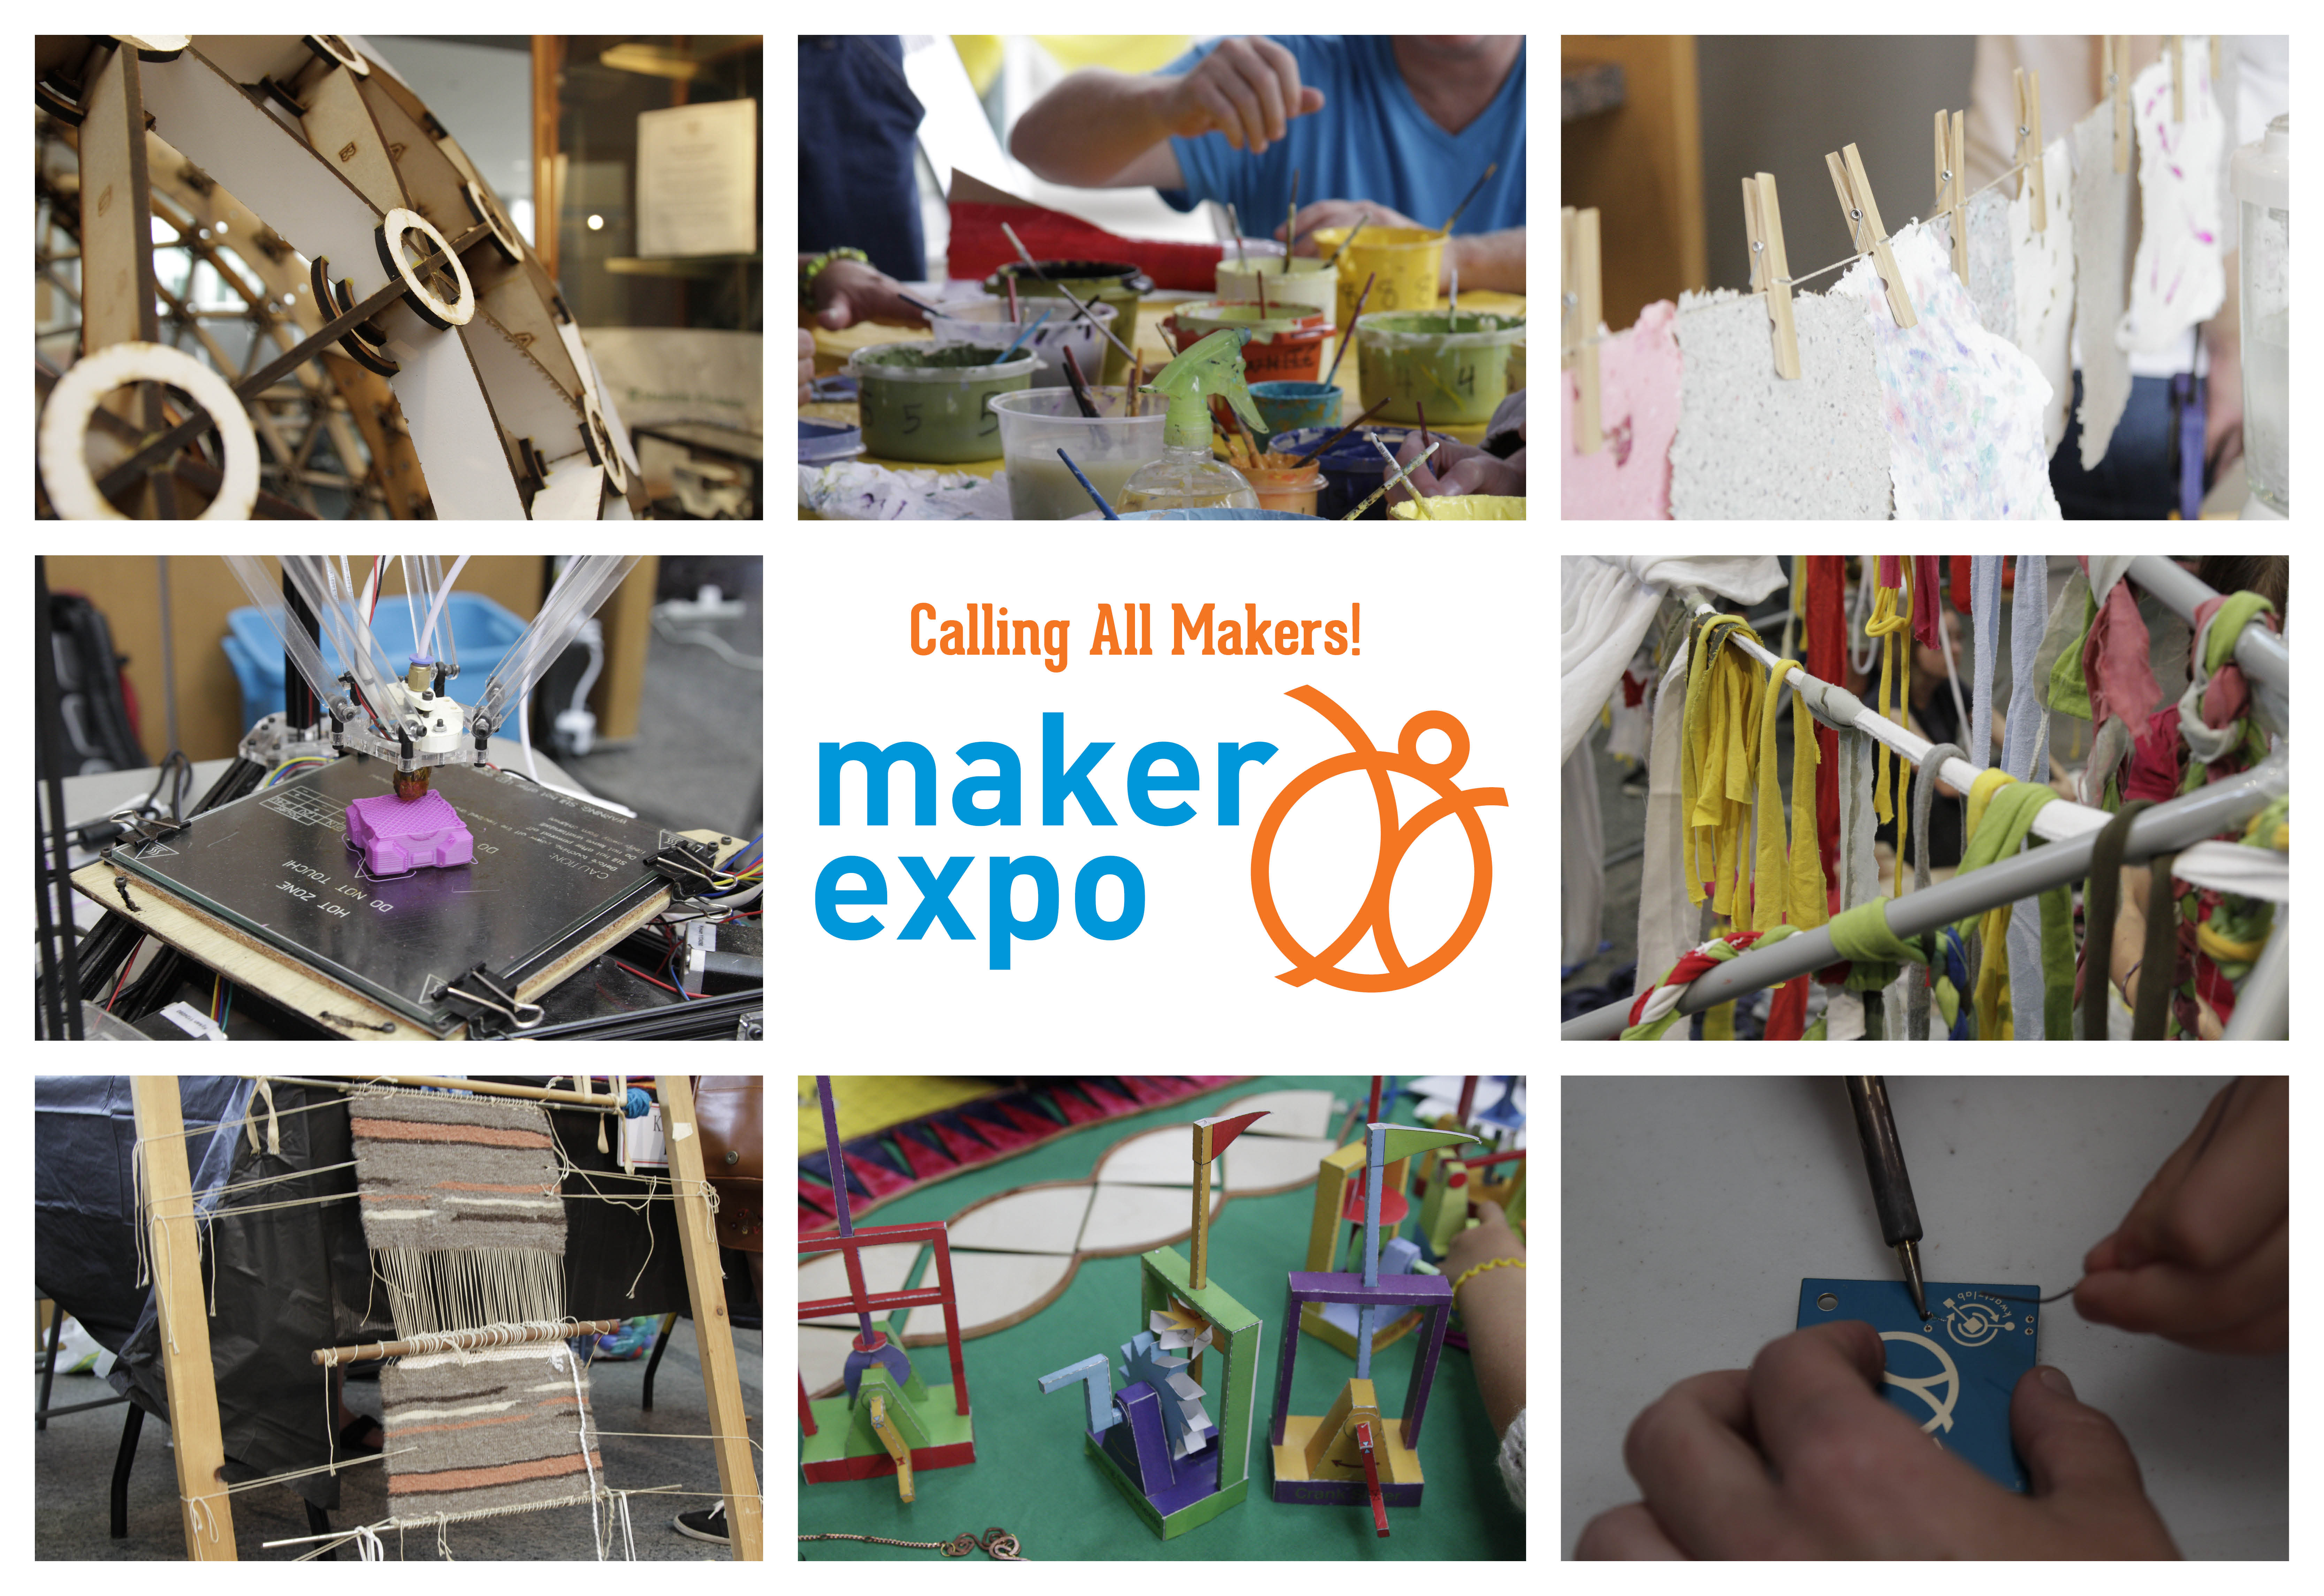 Mosiac photos from maker expo 2015